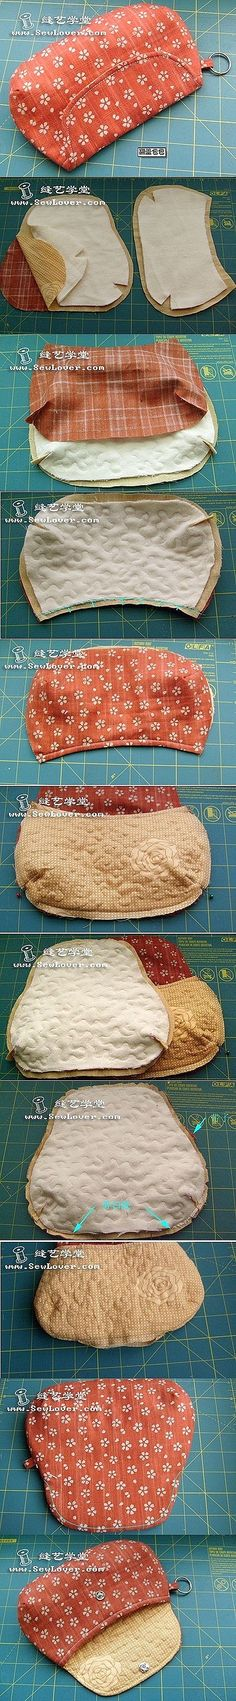 how to sew a clutch or beauty pouch tutorial. tutorial de neceser o bolso de mano DIY